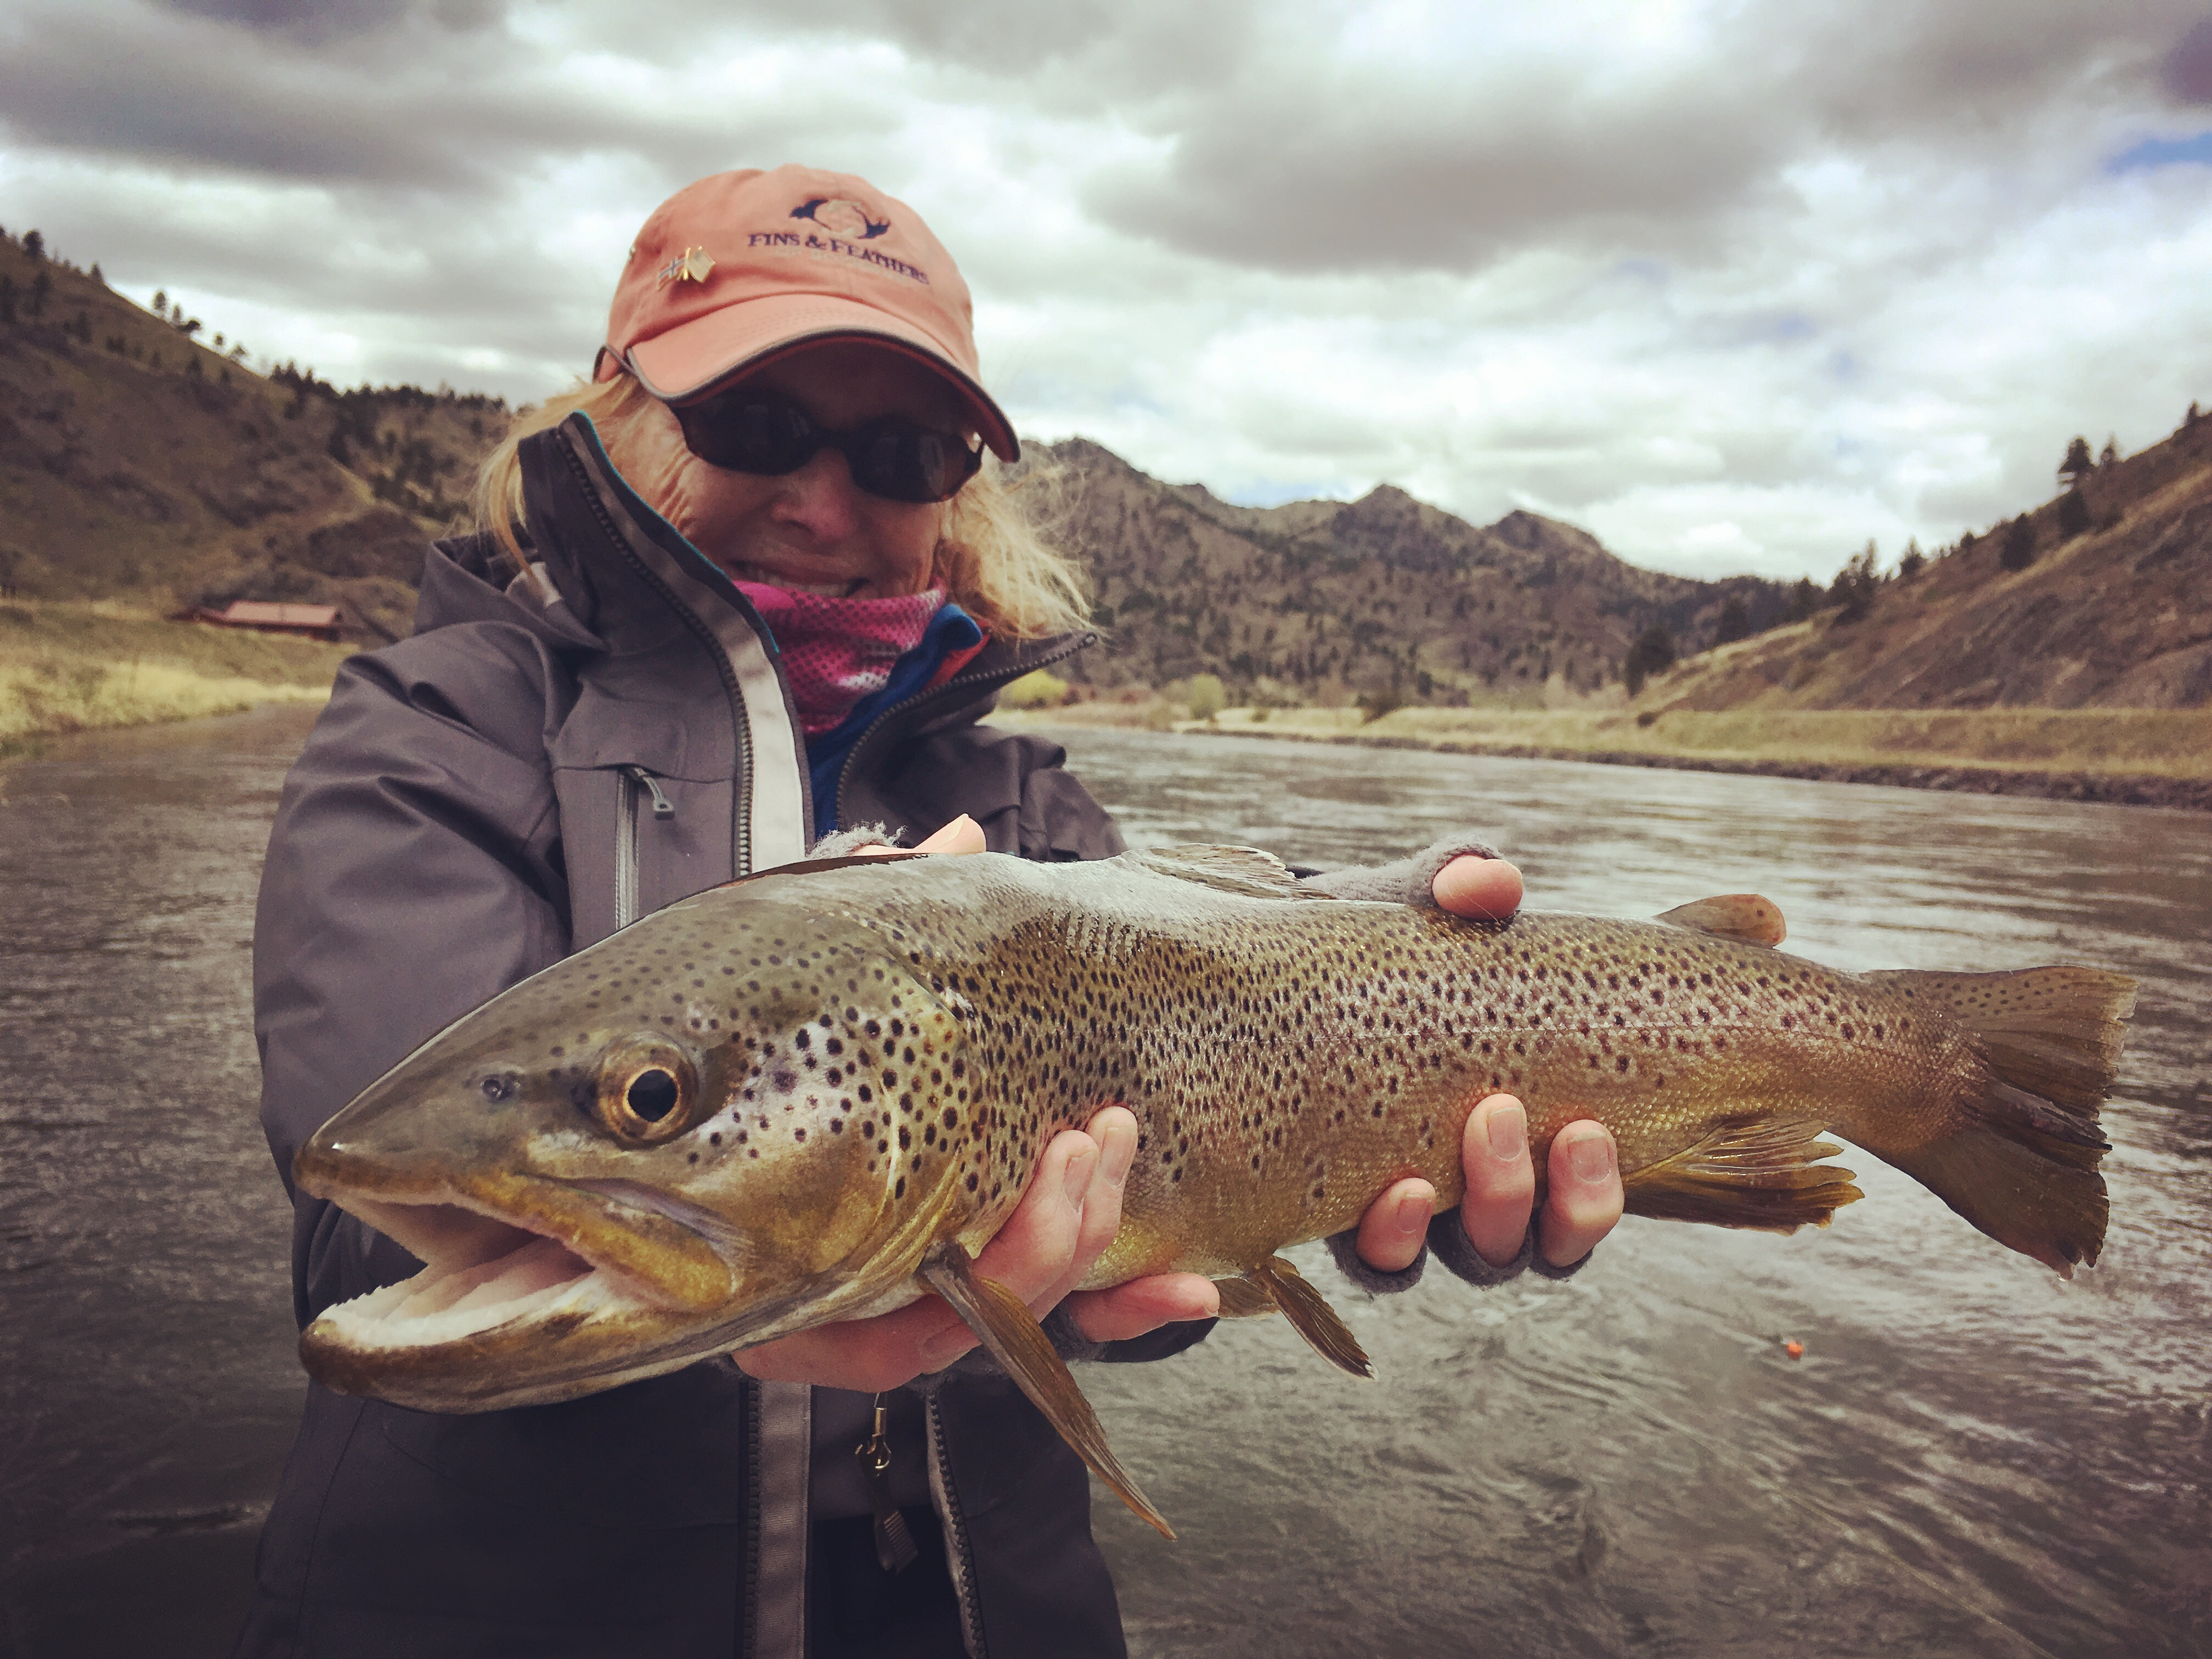 Missouri river fly fishing guide trips for Missouri river fly fishing